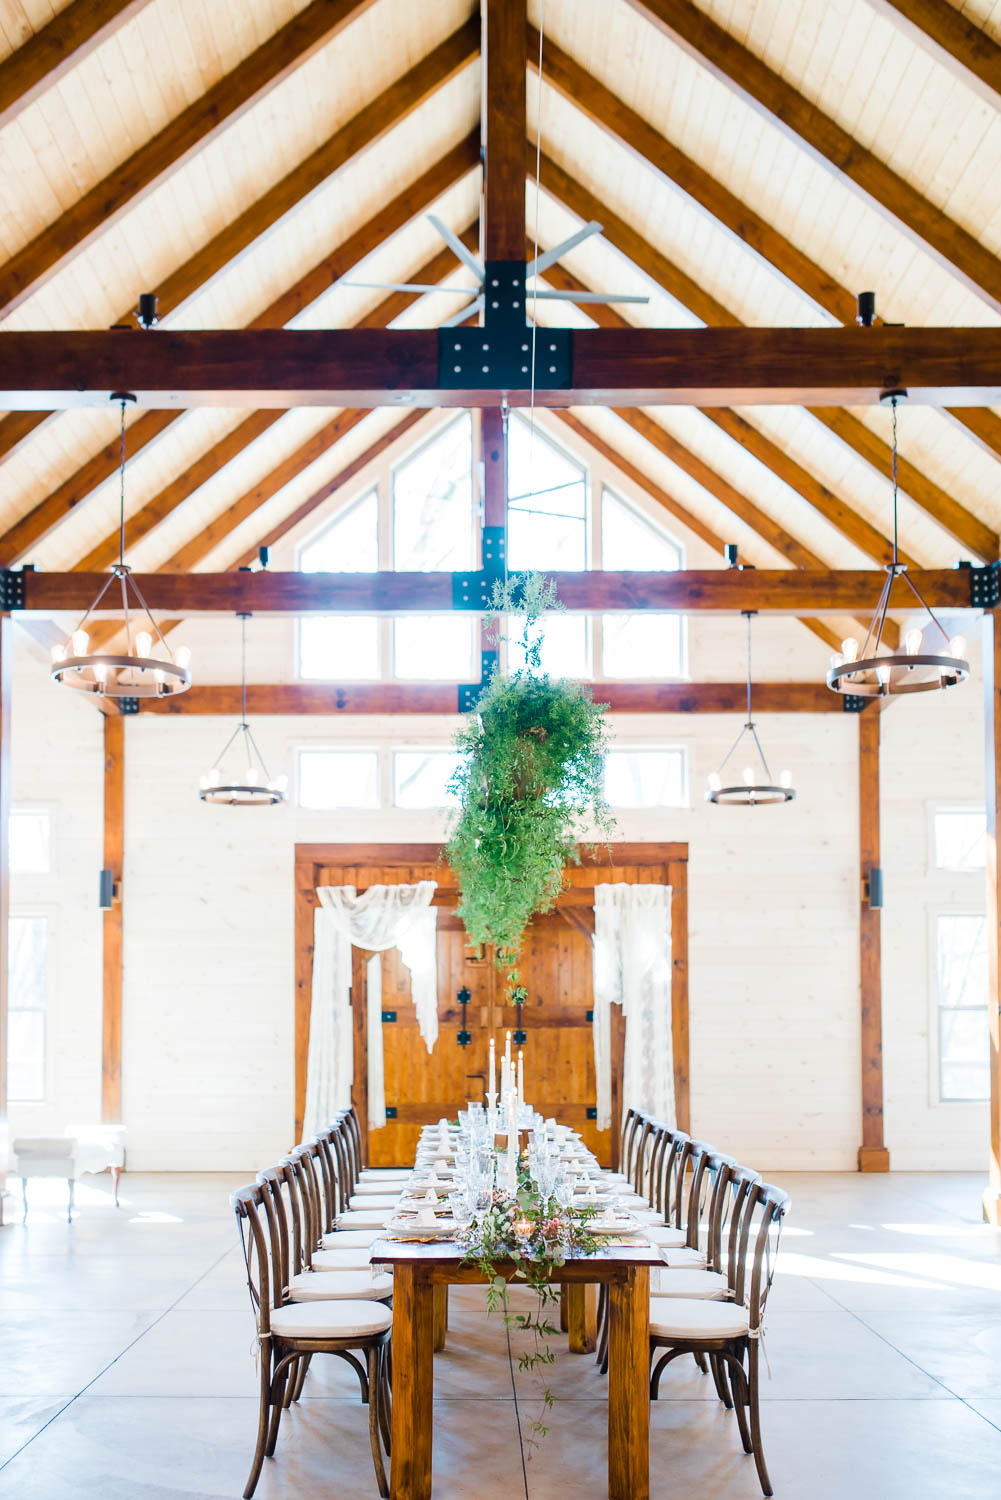 Hiwassee river weddings interior decorated with hanging greenery, crossback wooden chairs from Luma Design in Chattanooga